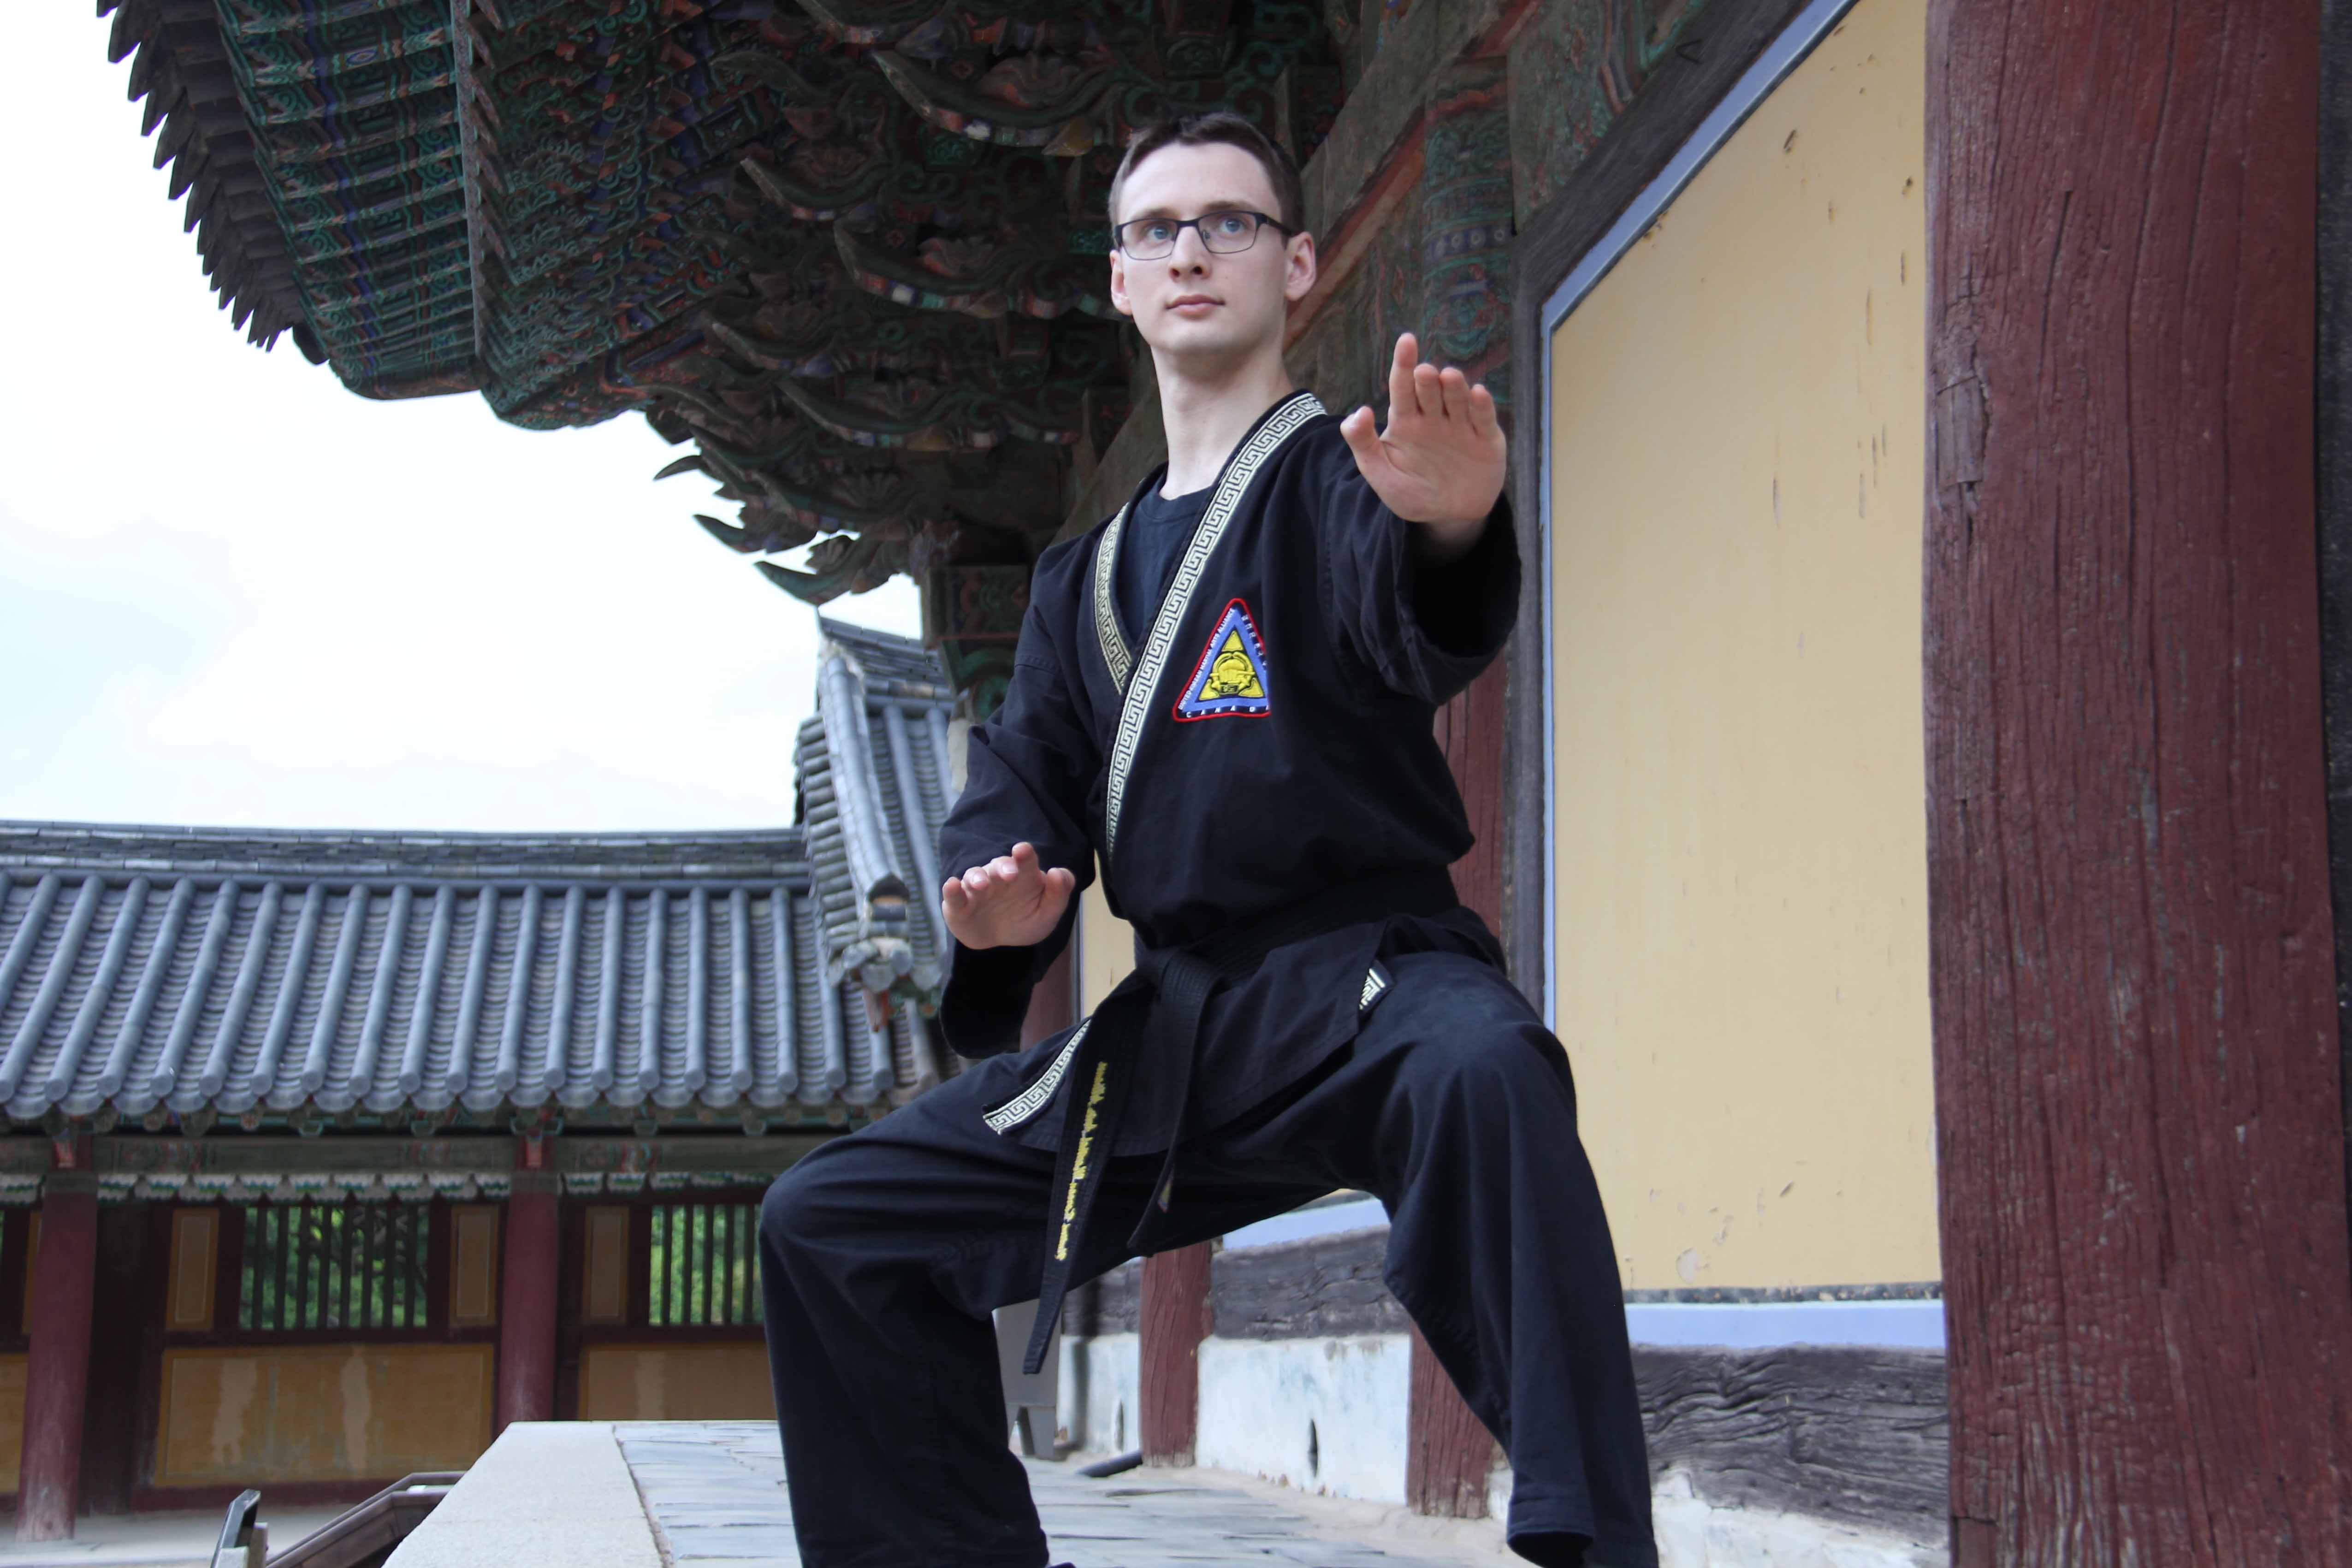 Instructor Martin St-Amant strikes a pose in South Korea.